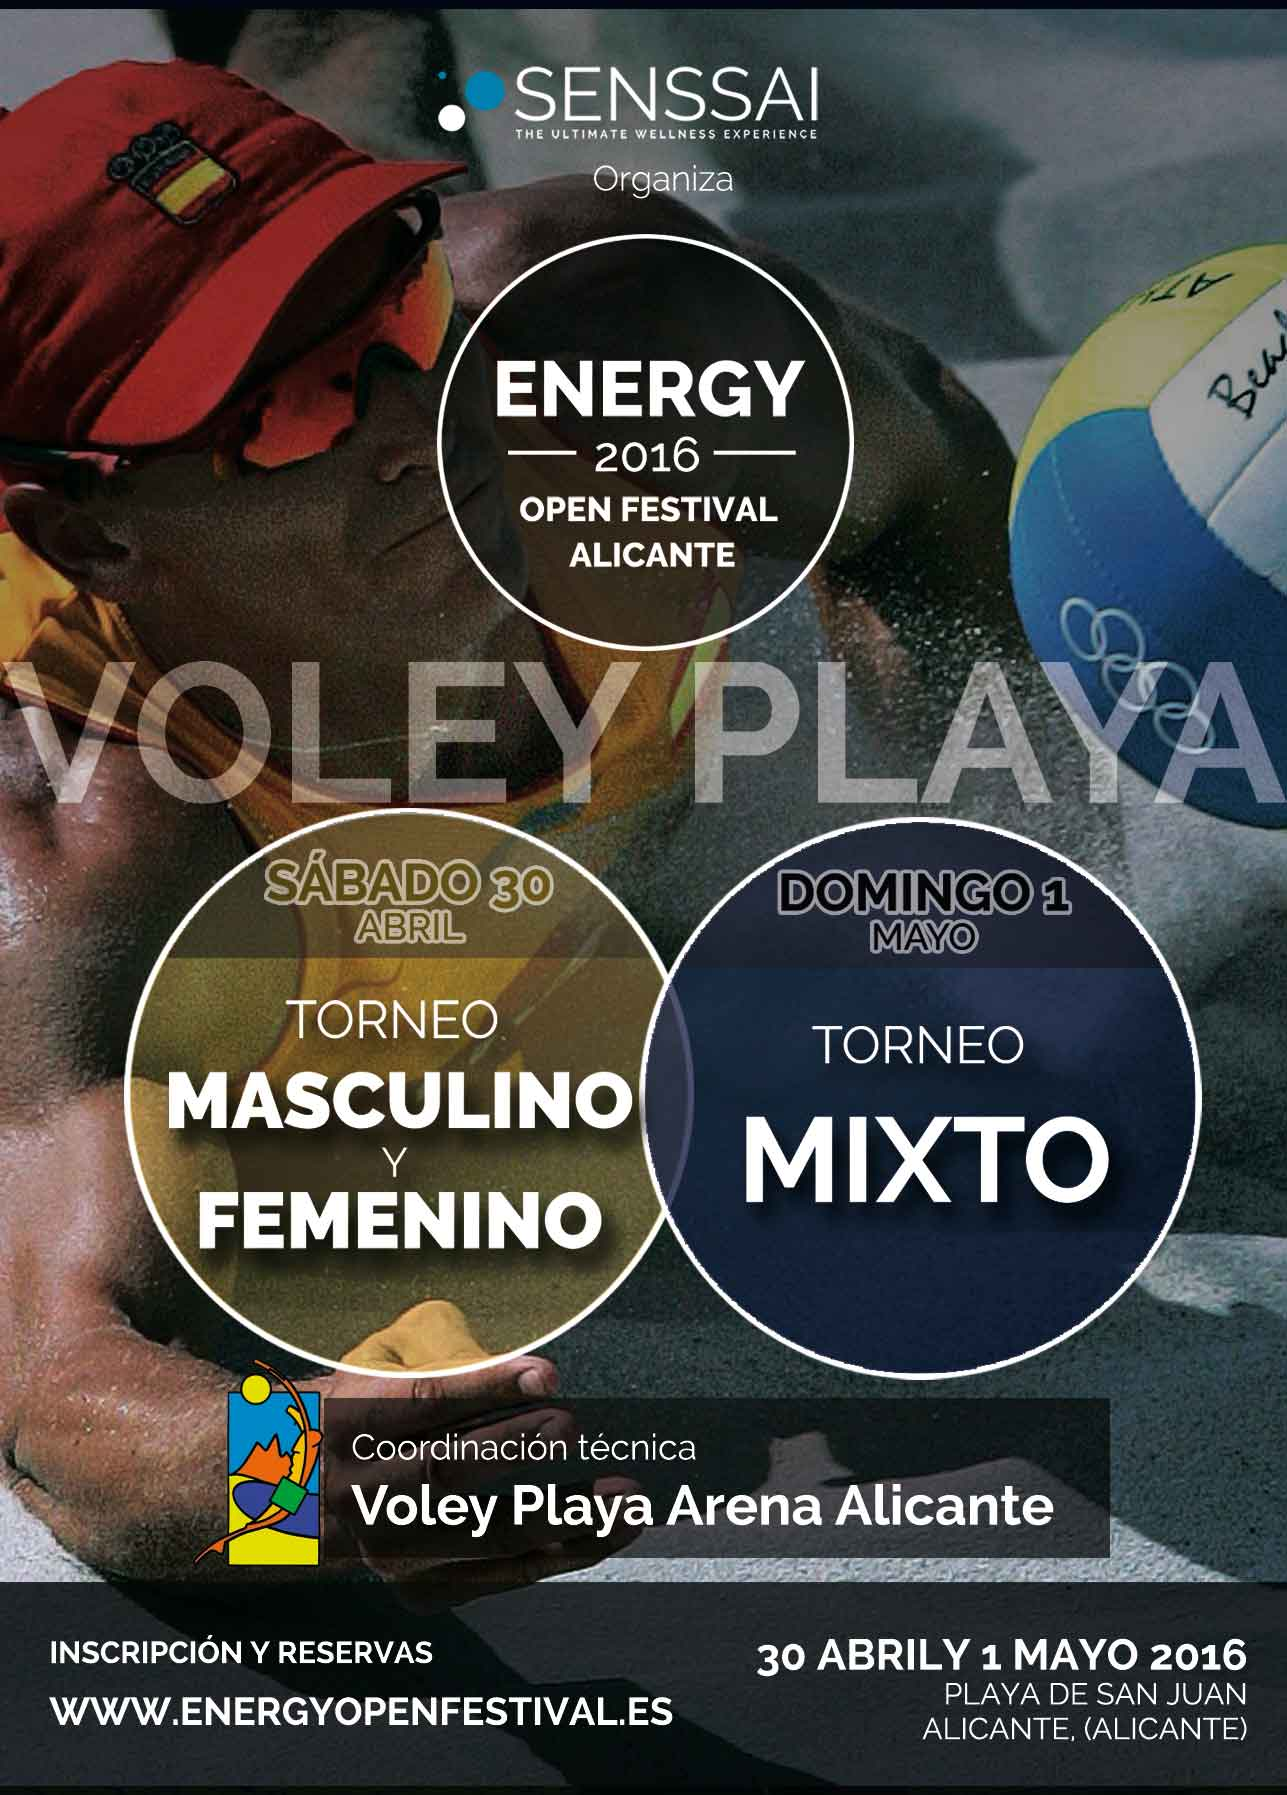 flyer-energy2016-volley2